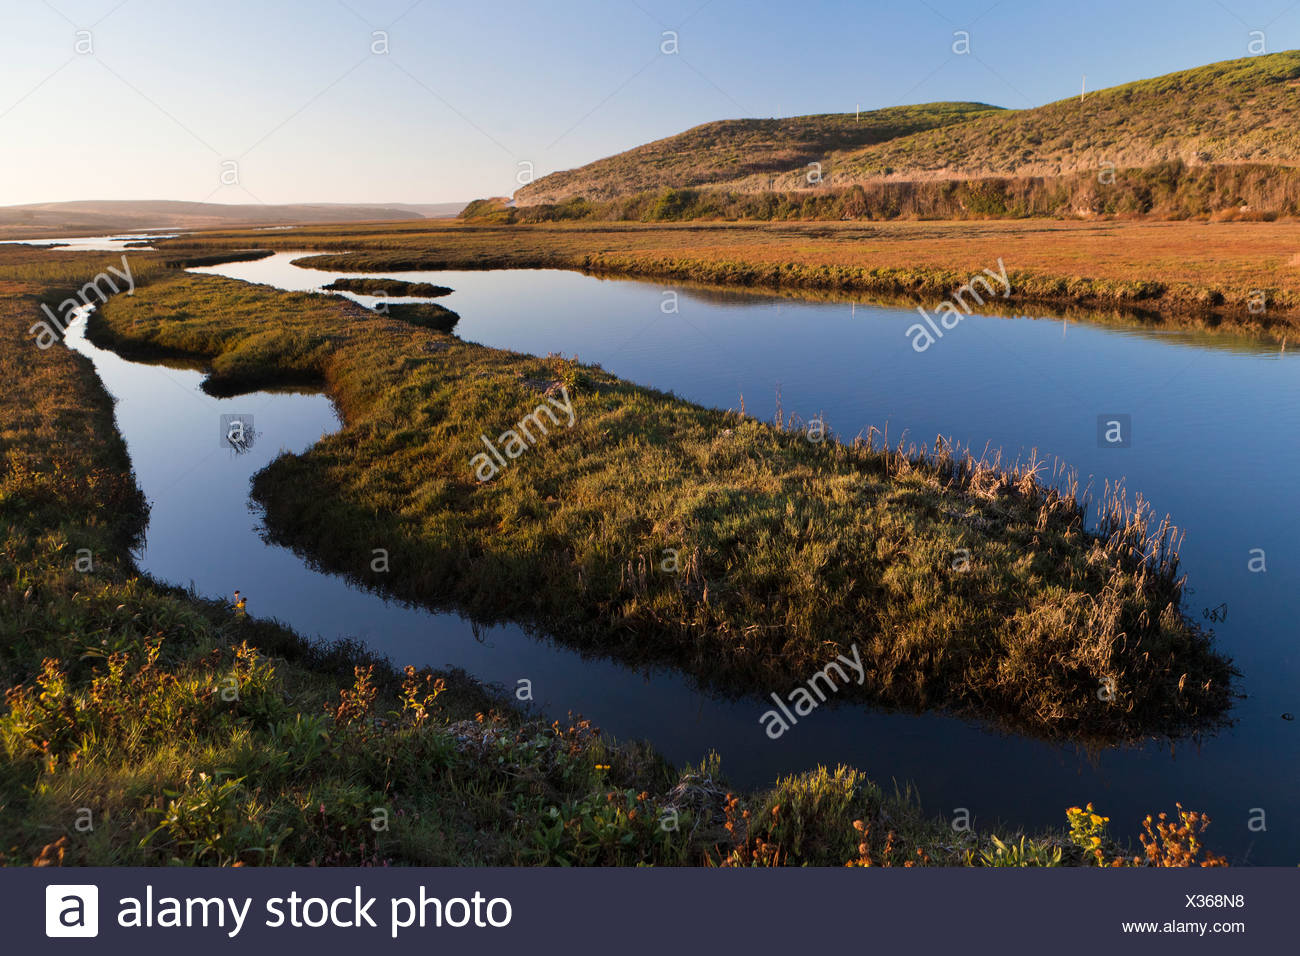 Schooner Bay, part of Drakes Estero, an estuary which drains the largest part of the Point Reyes Peninsula, Point Reyes - Stock Image